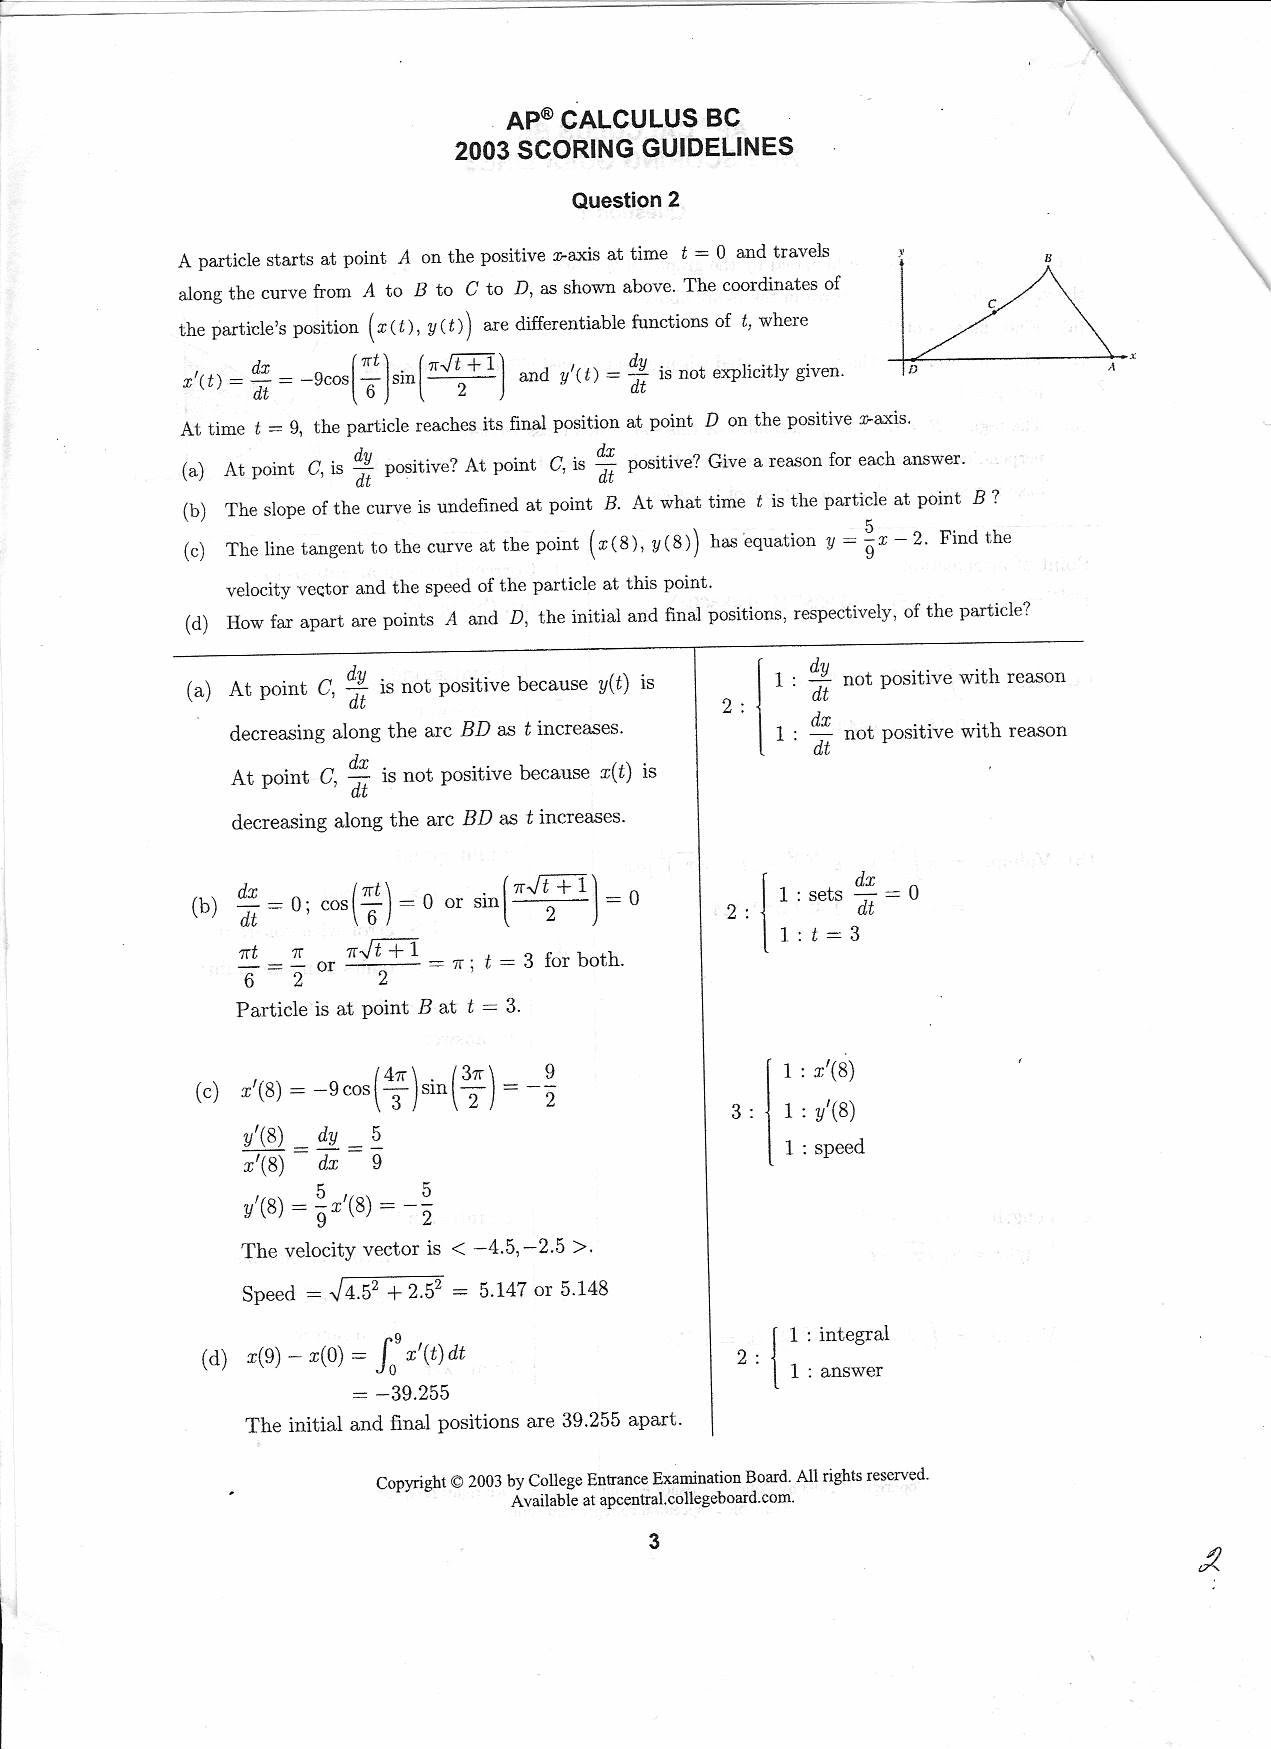 BC Calculus 2003 Question 2